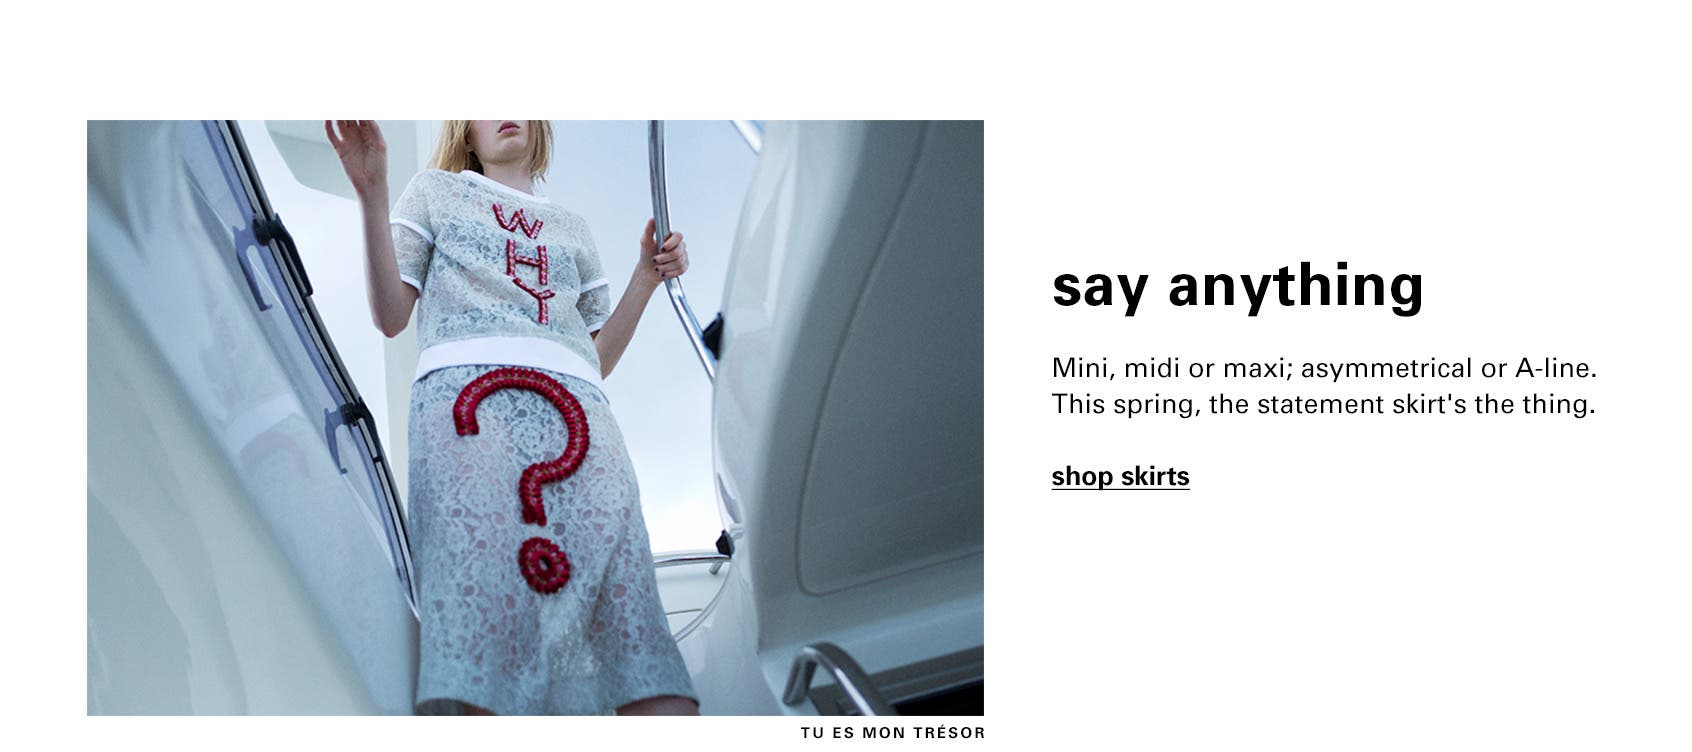 Say anything in mini, midi, maxi, asymmetrical and A-line statement skirts.